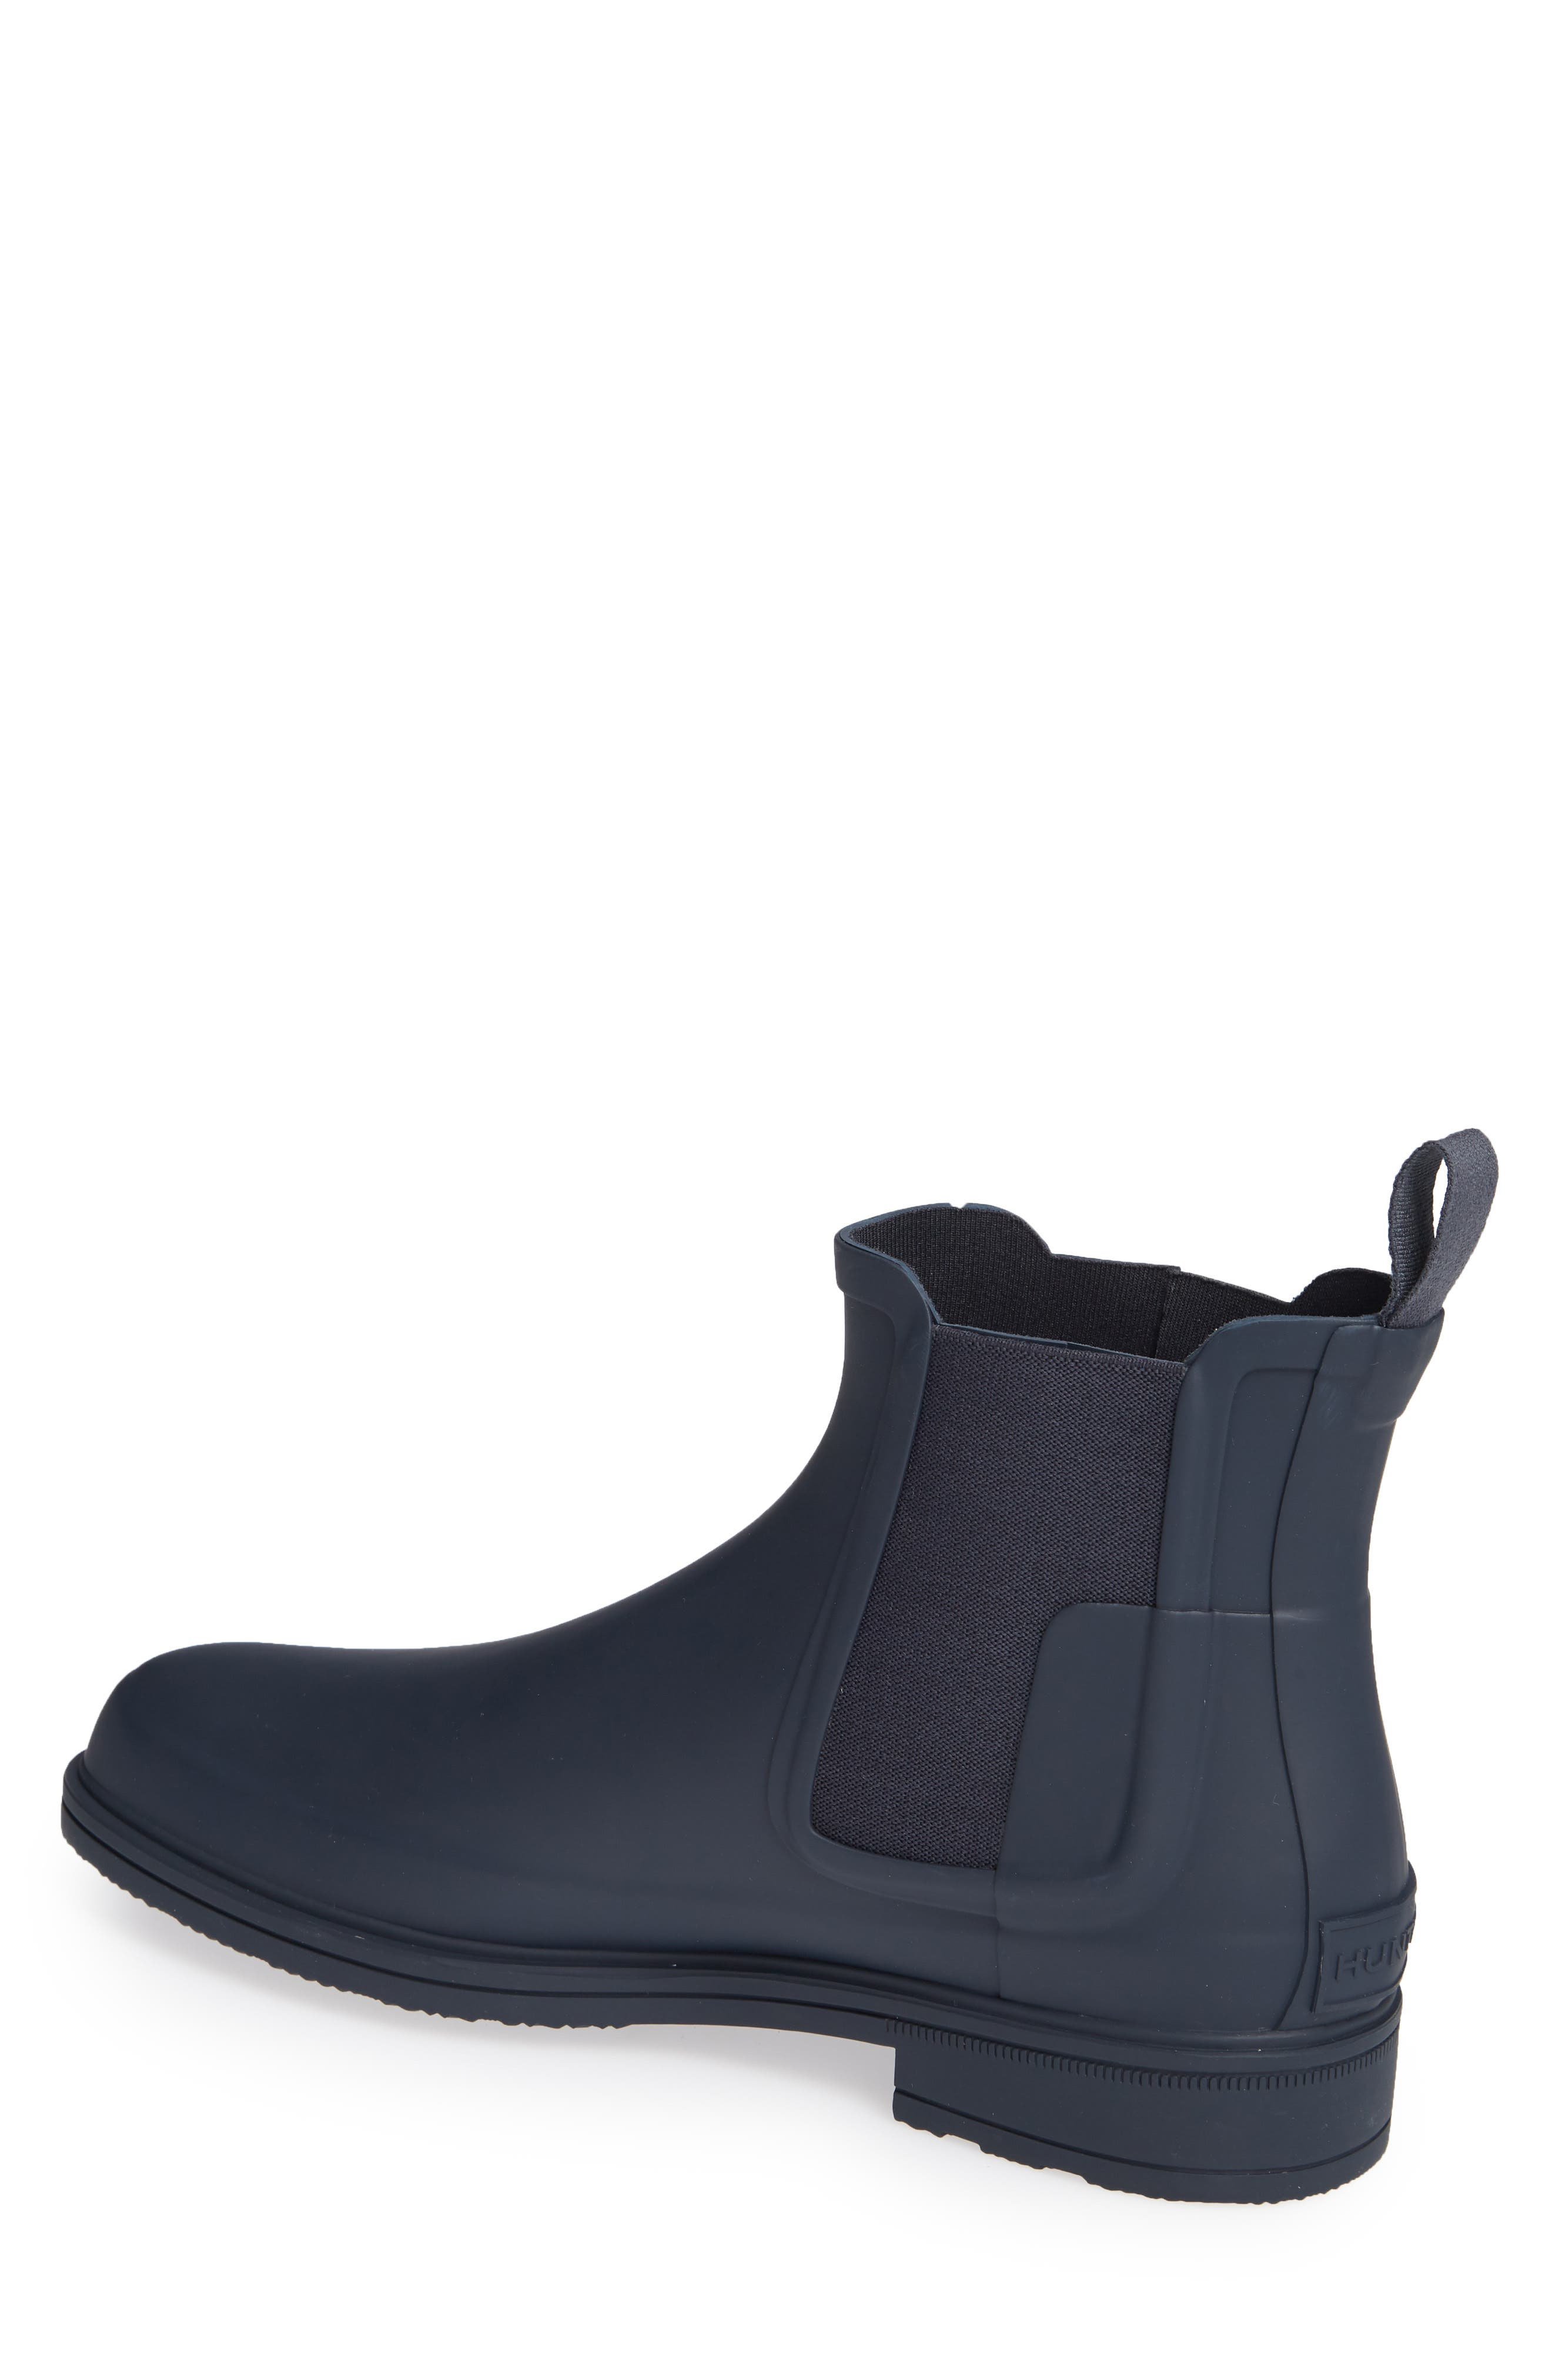 HUNTER, Original Refined Waterproof Chelsea Boot, Alternate thumbnail 2, color, NAVY RUBBER